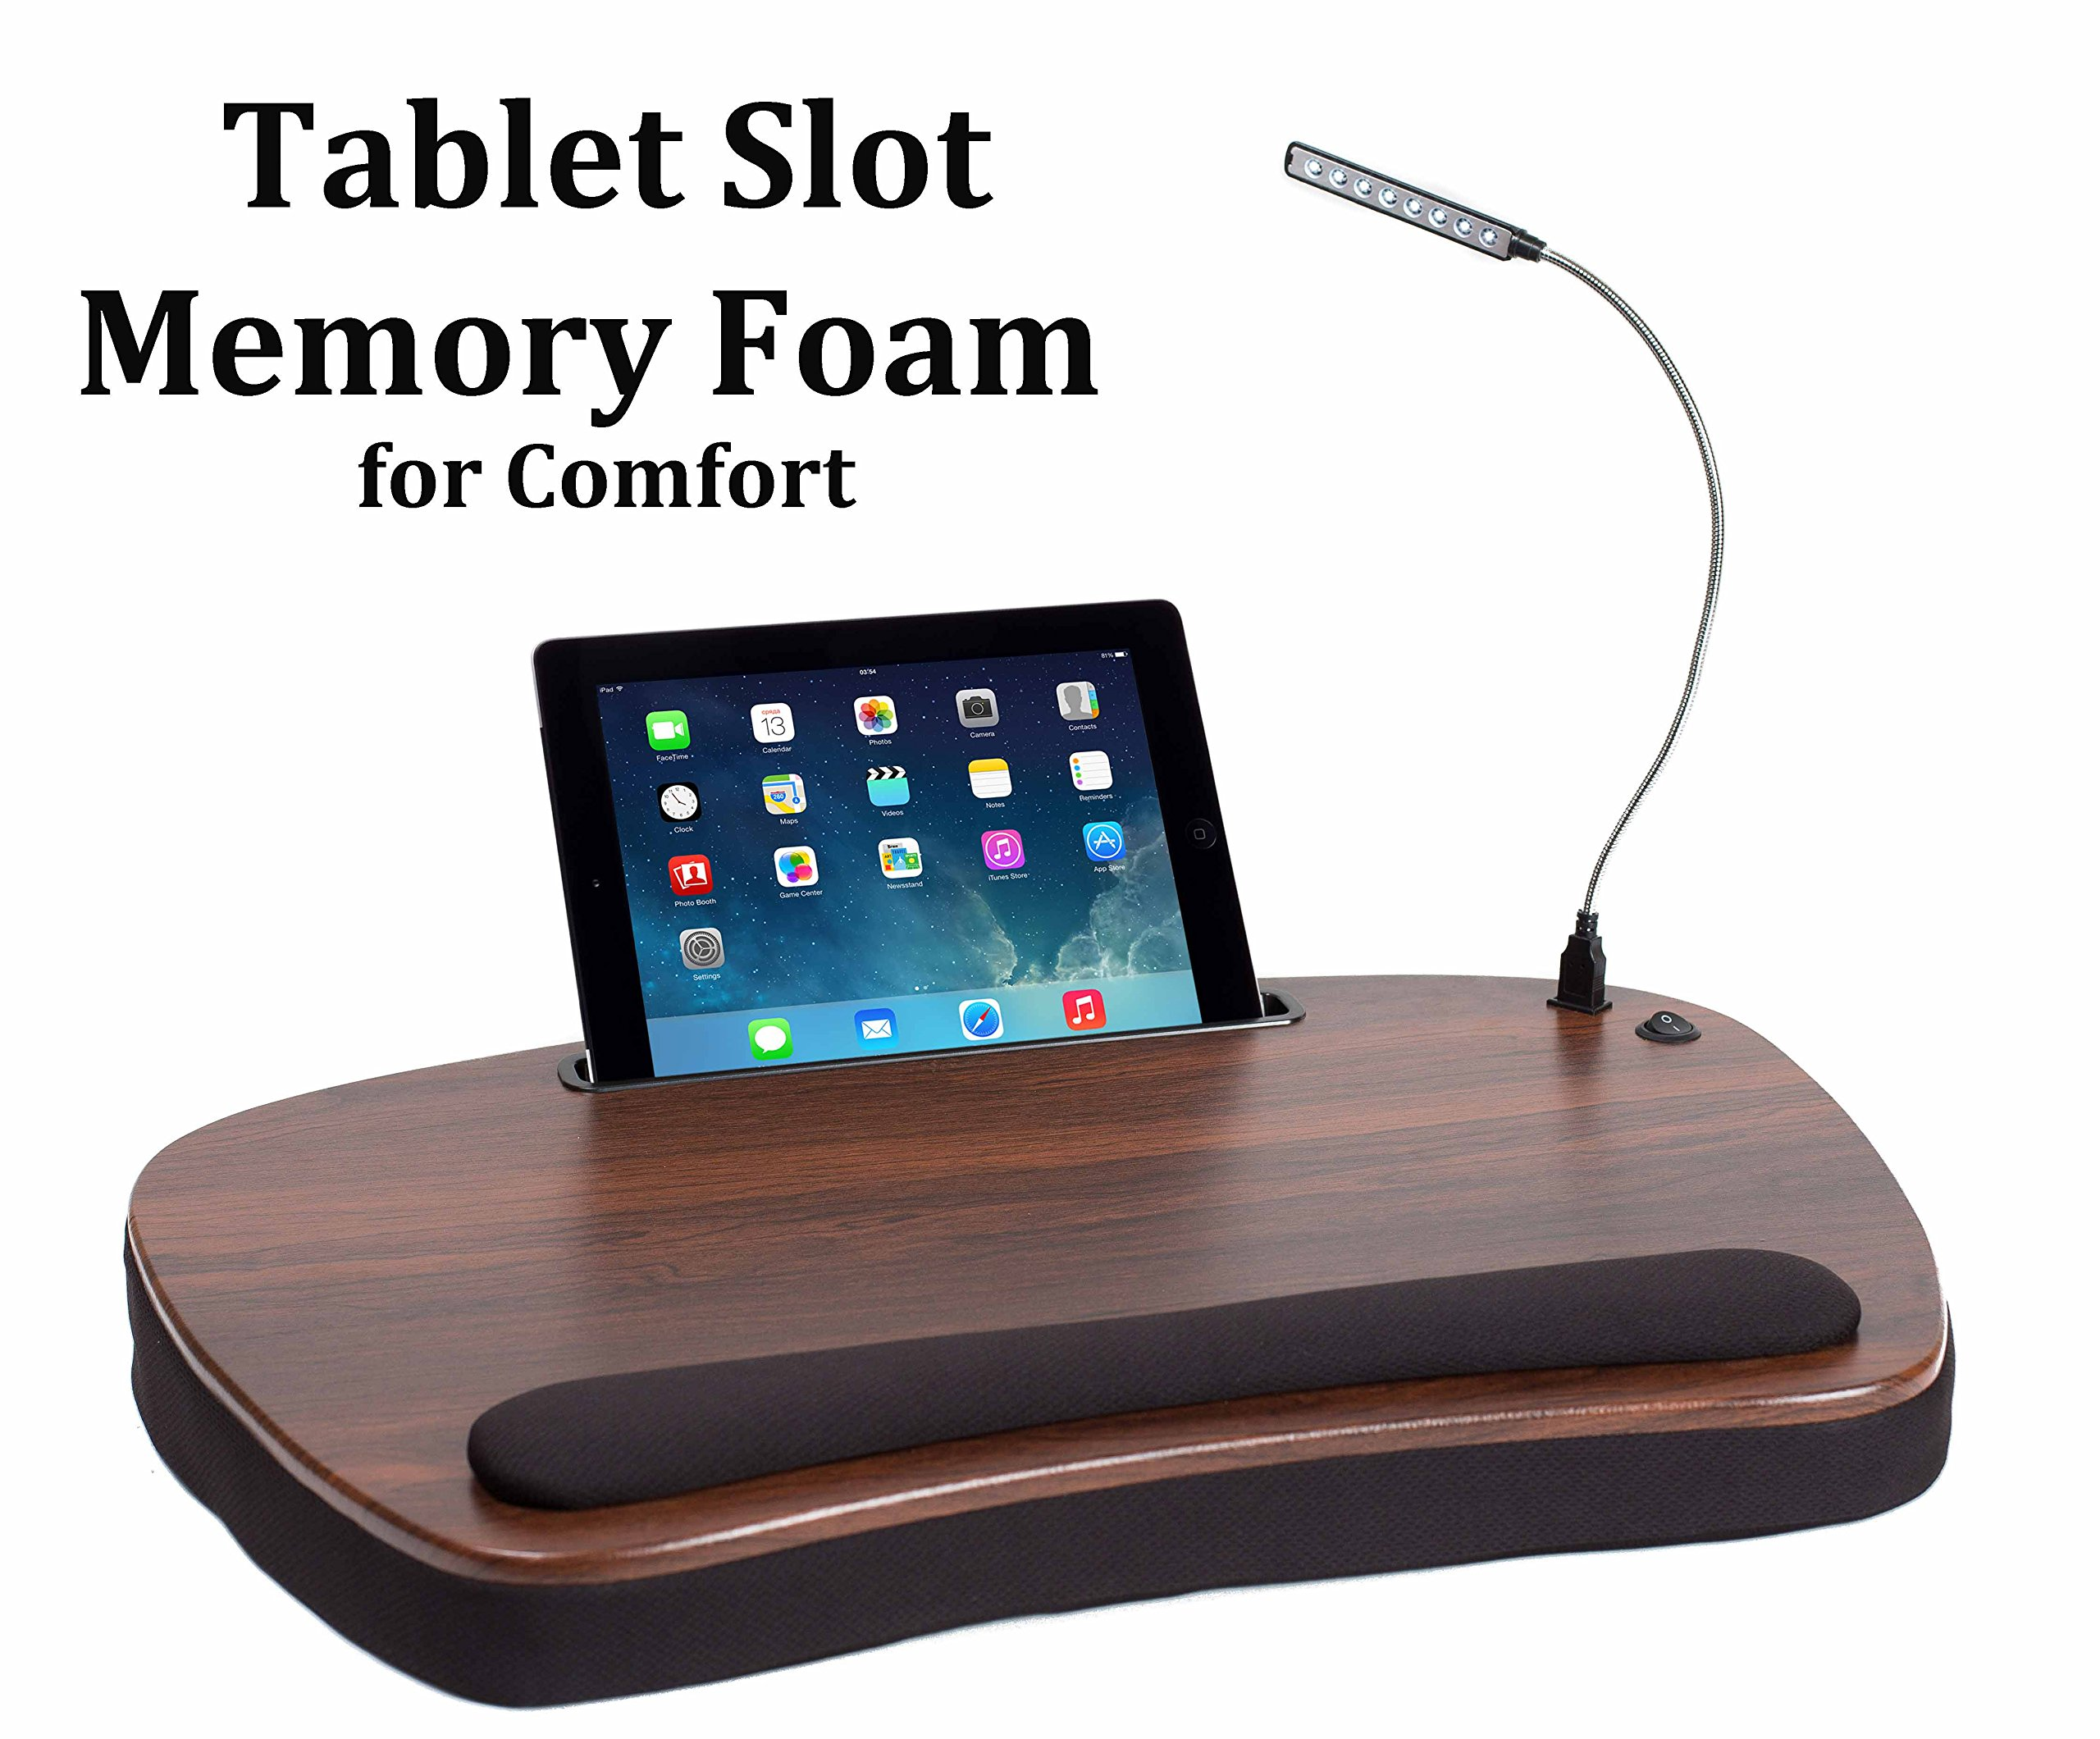 Sofia Sam Oversized Wood Top Memory Foam Lap Desk with Detachable USB Light and Tablet Slot (Black) Supports Laptops Up To 20 Inches by Sofia + Sam